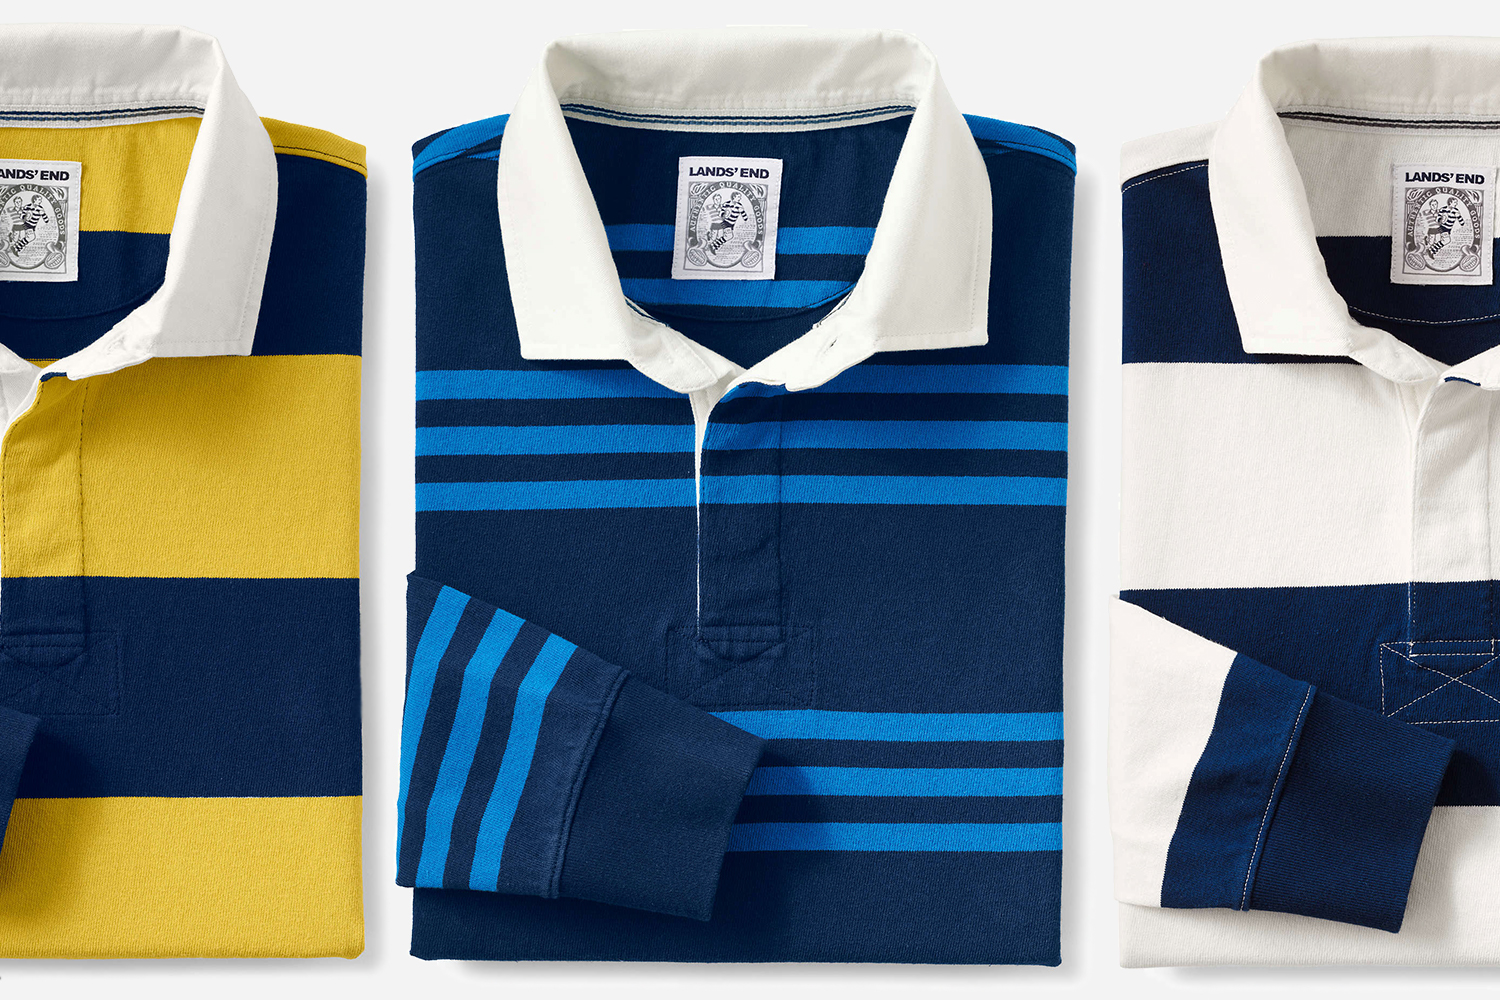 Lands' End Rugby Shirts